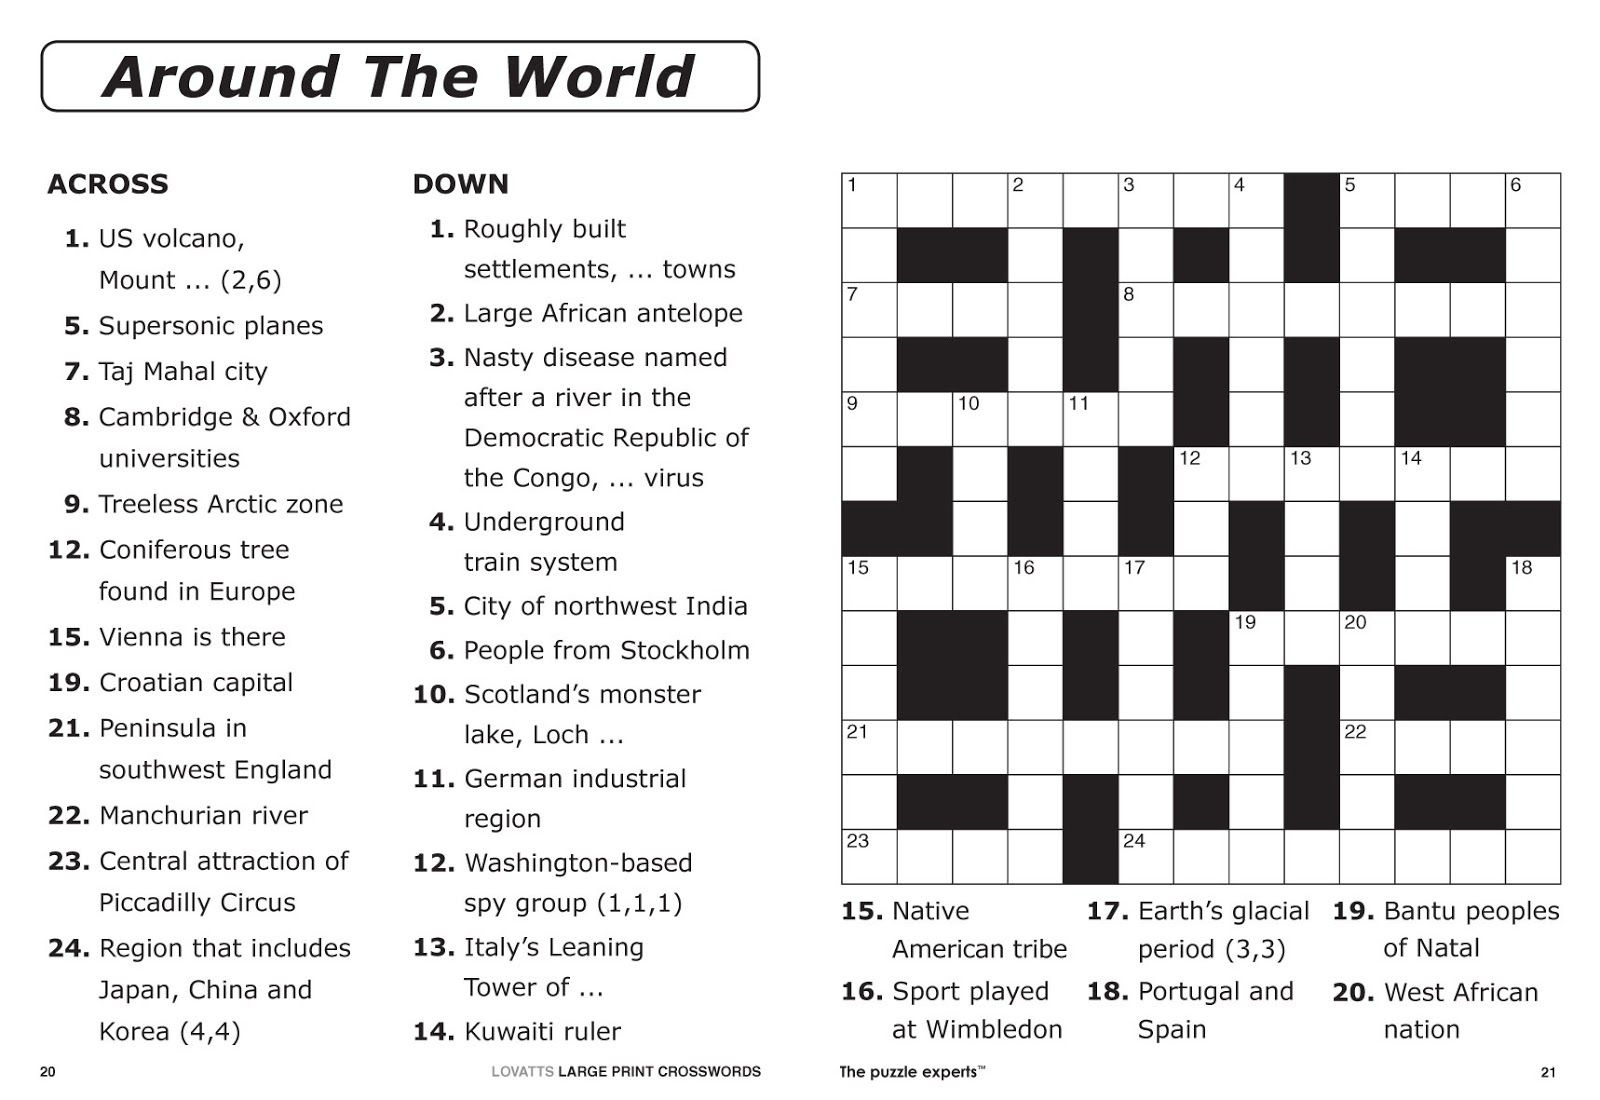 Free Printable Large Print Crossword Puzzles | M3U8 - Free Printable Crossword Puzzles